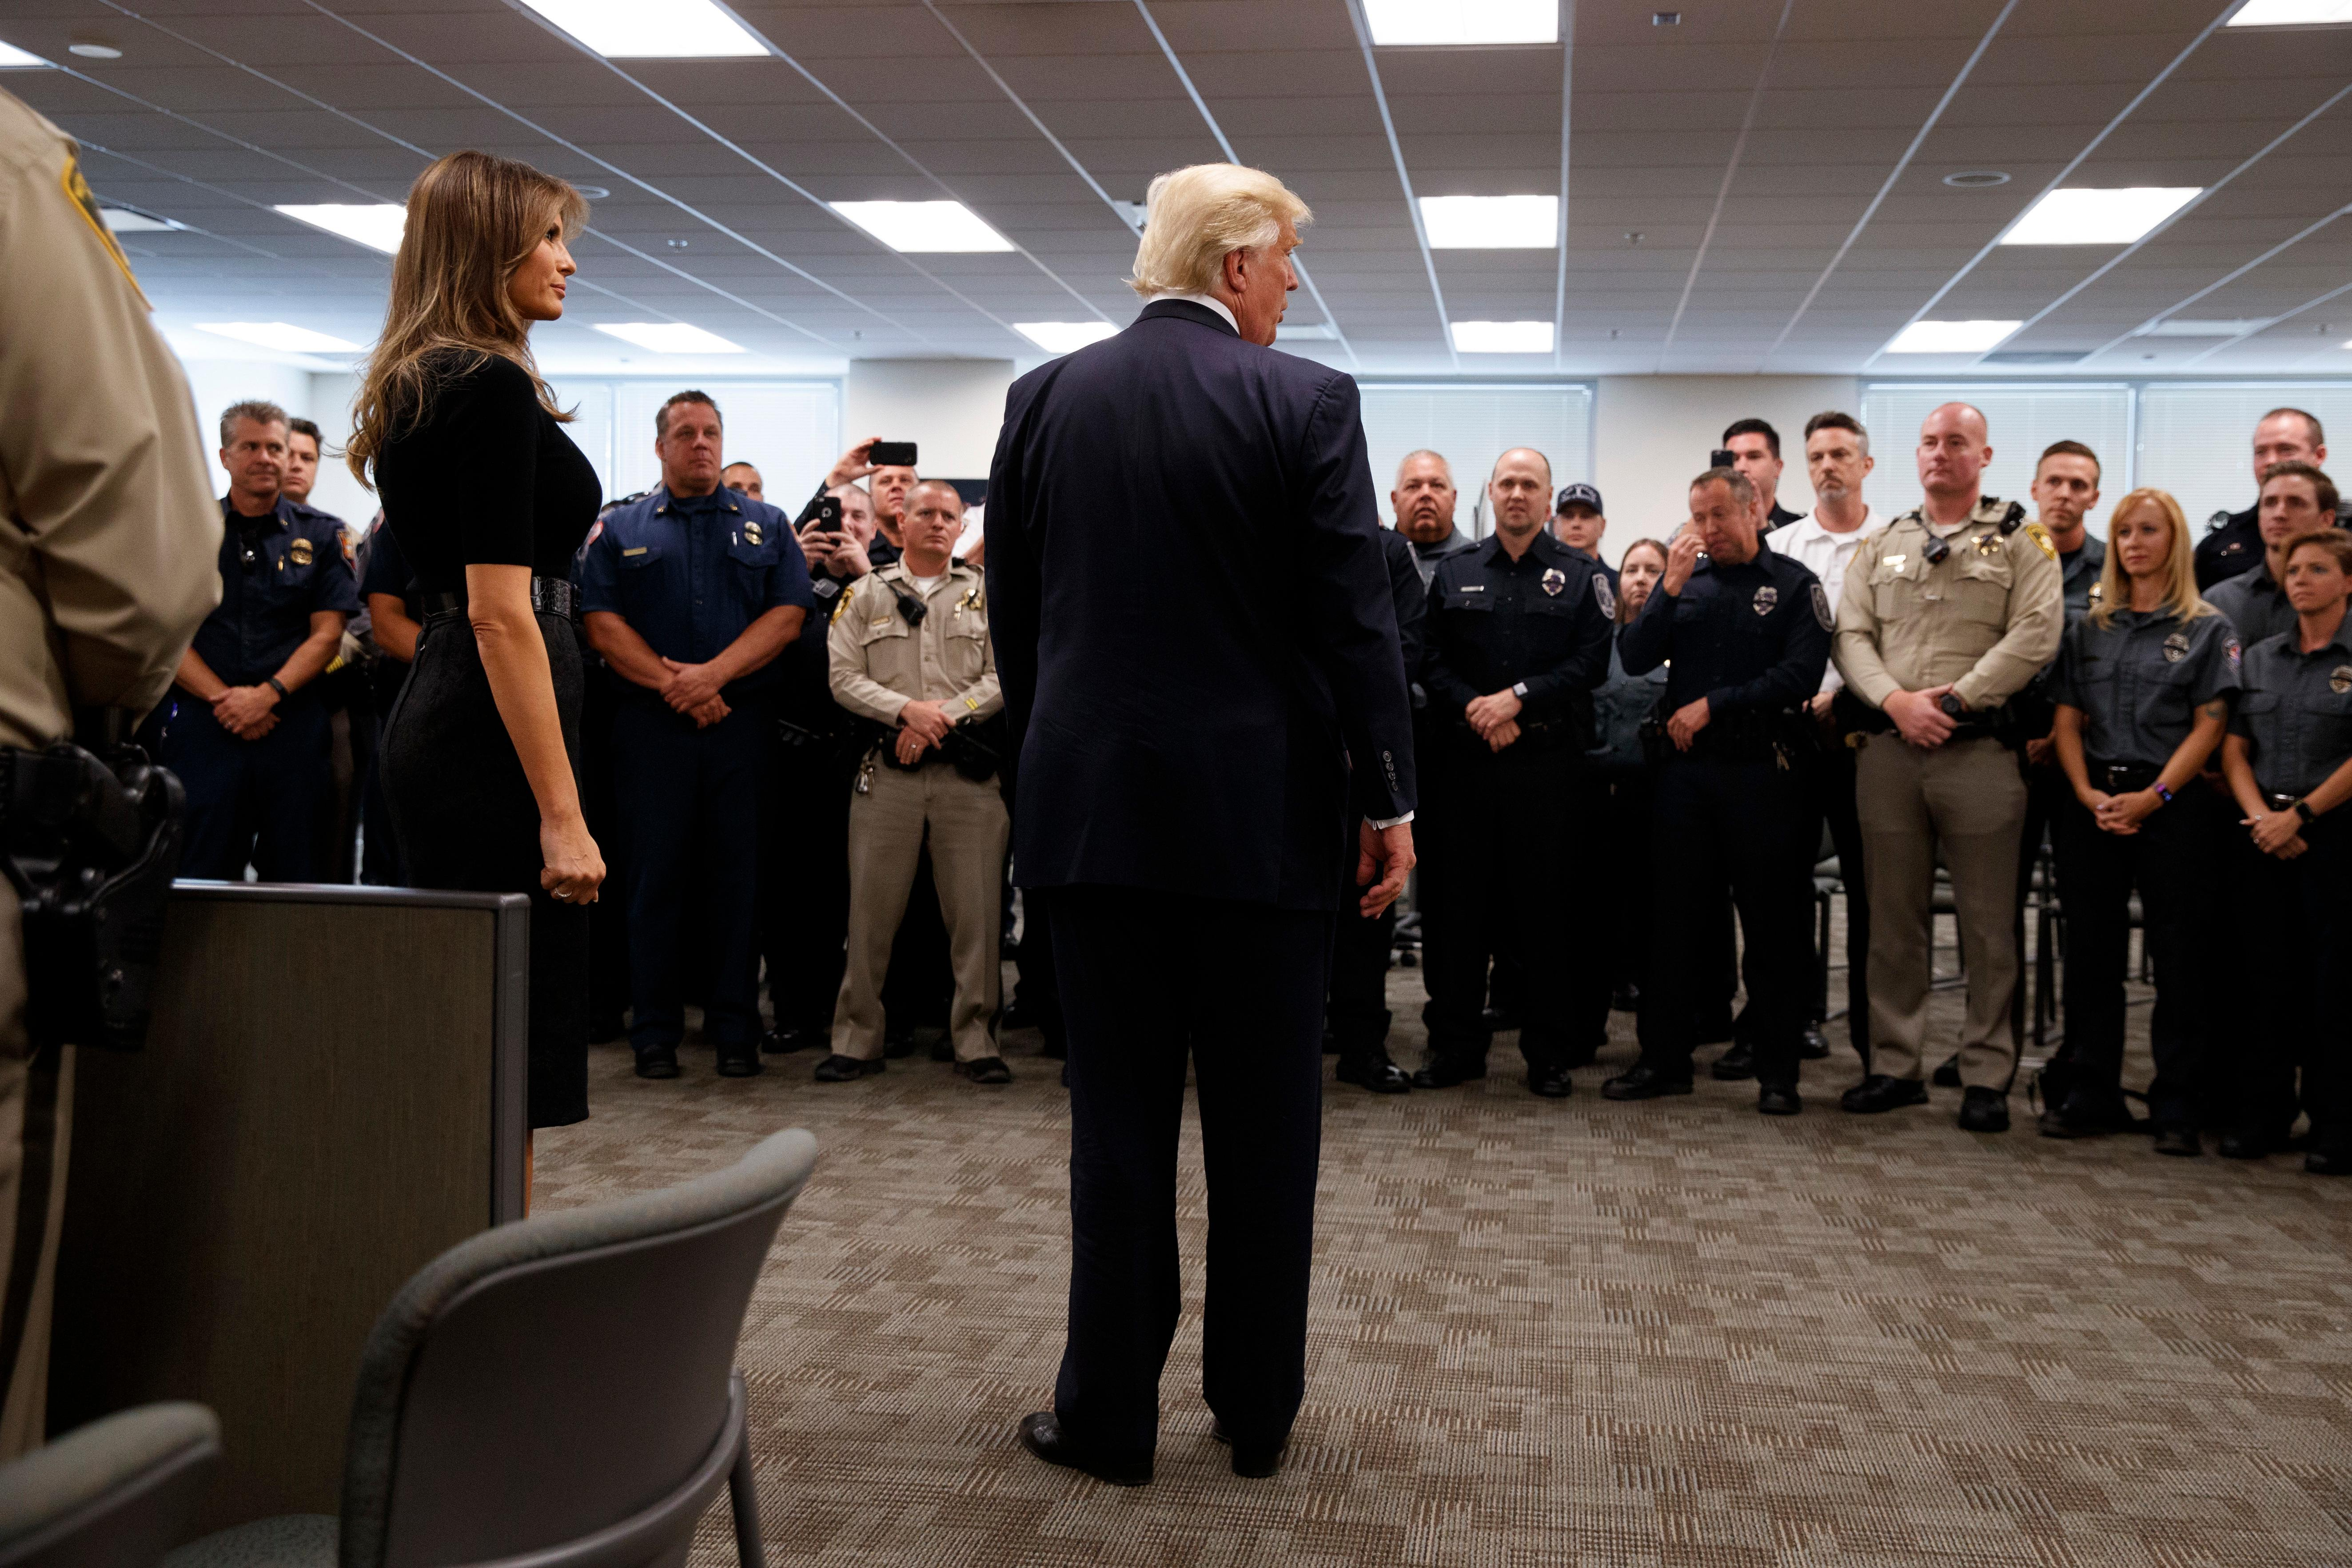 President Donald Trump and first lady Melania Trump meet with first responders at the Las Vegas Metropolitan Police Department, Wednesday, Oct. 4, 2017, in Las Vegas. (AP Photo/Evan Vucci)